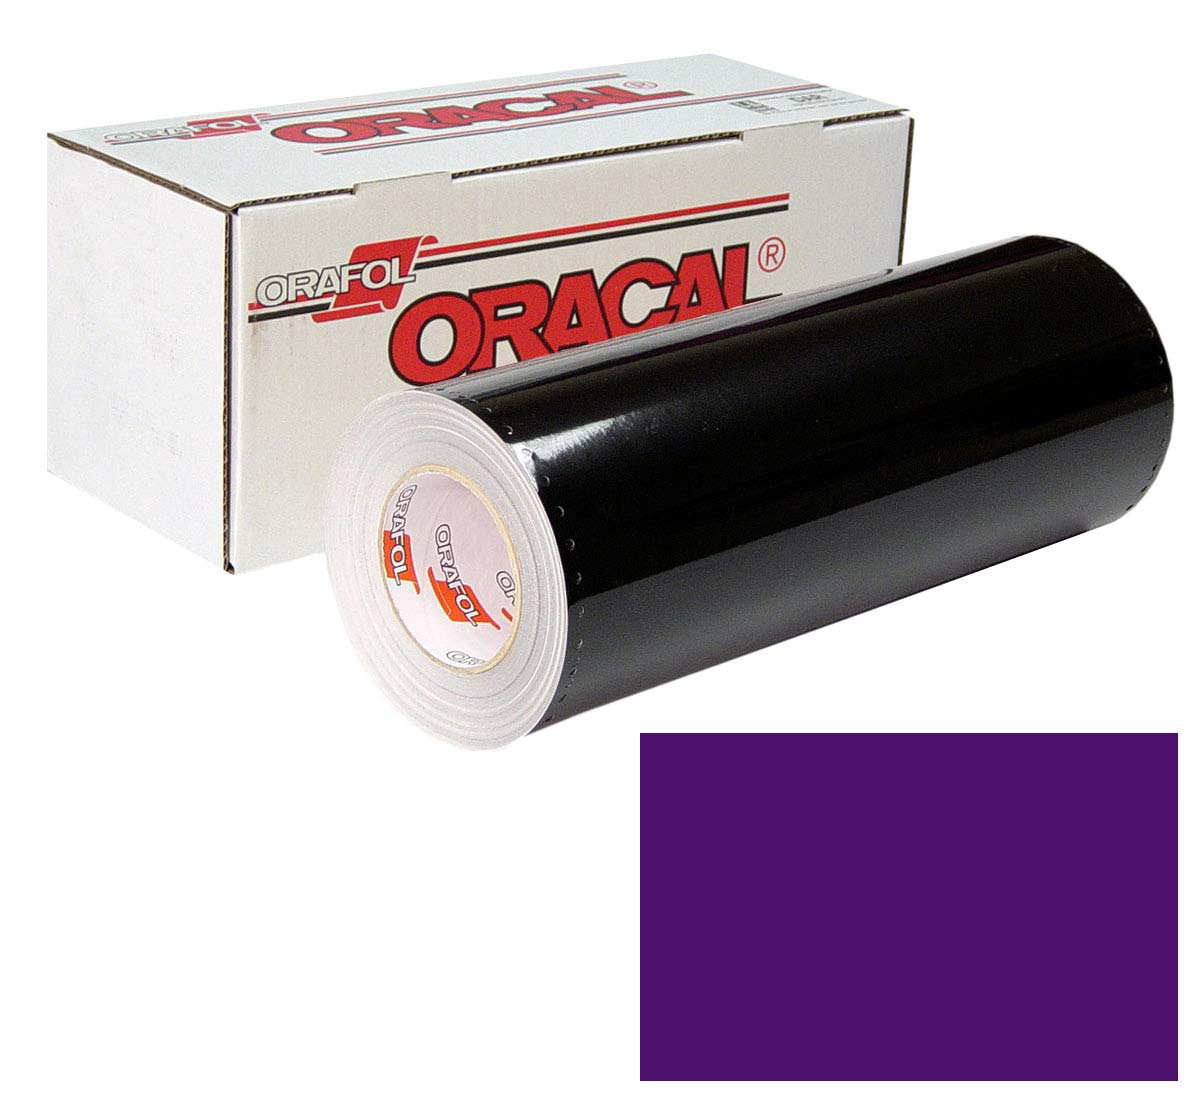 ORACAL 641 Unp 24In X 50Yd 040 Violet